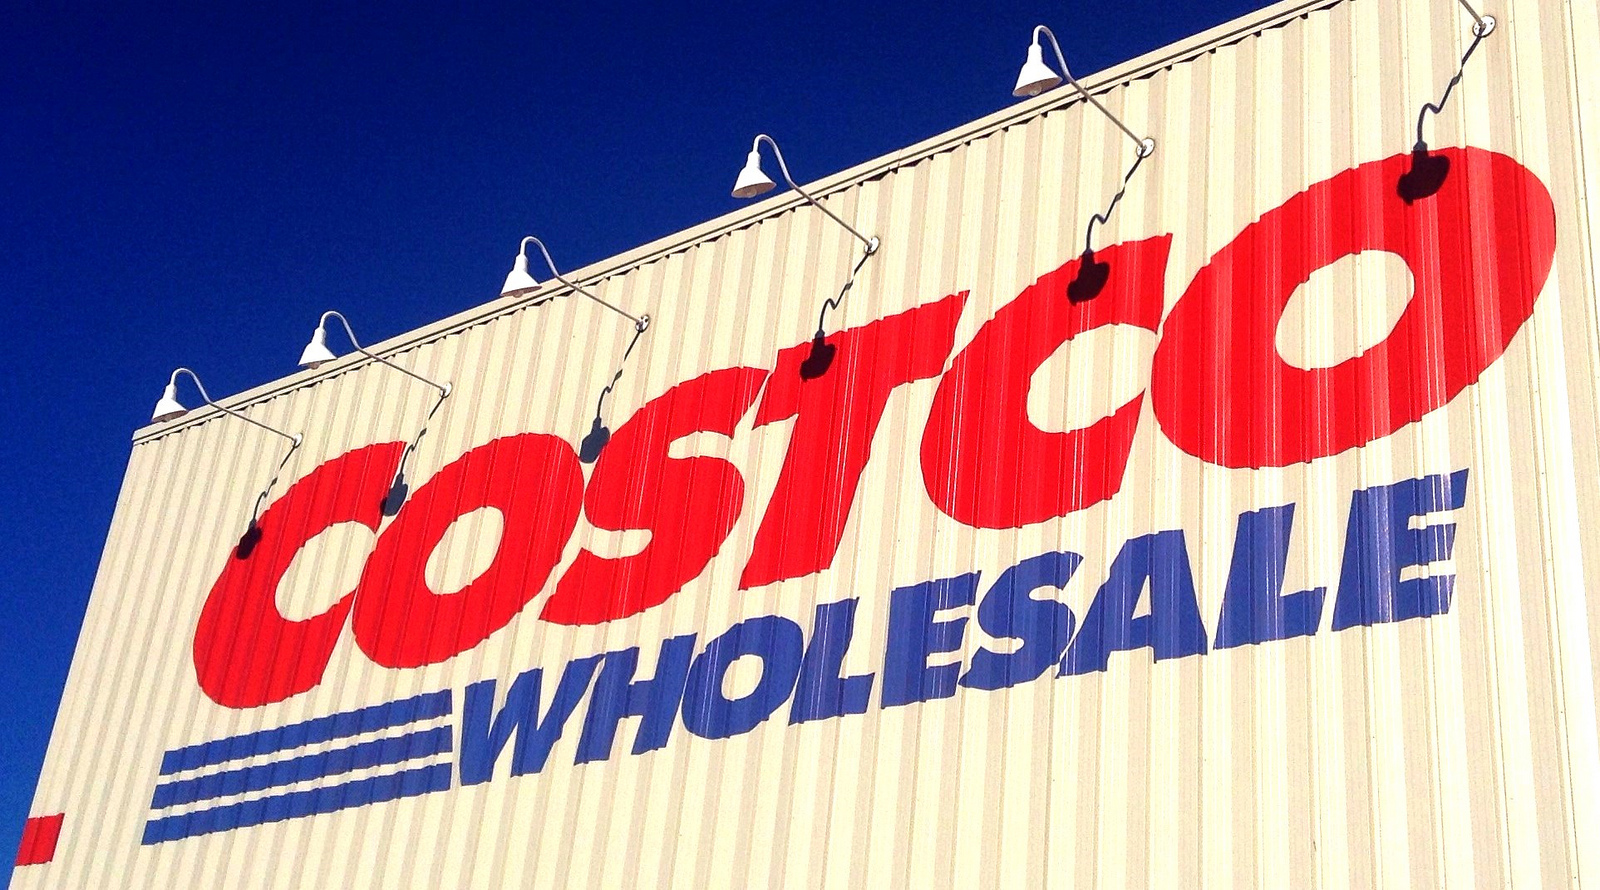 Can You Get Your Tires Rotated for Free at Costco? - SavingAdvice